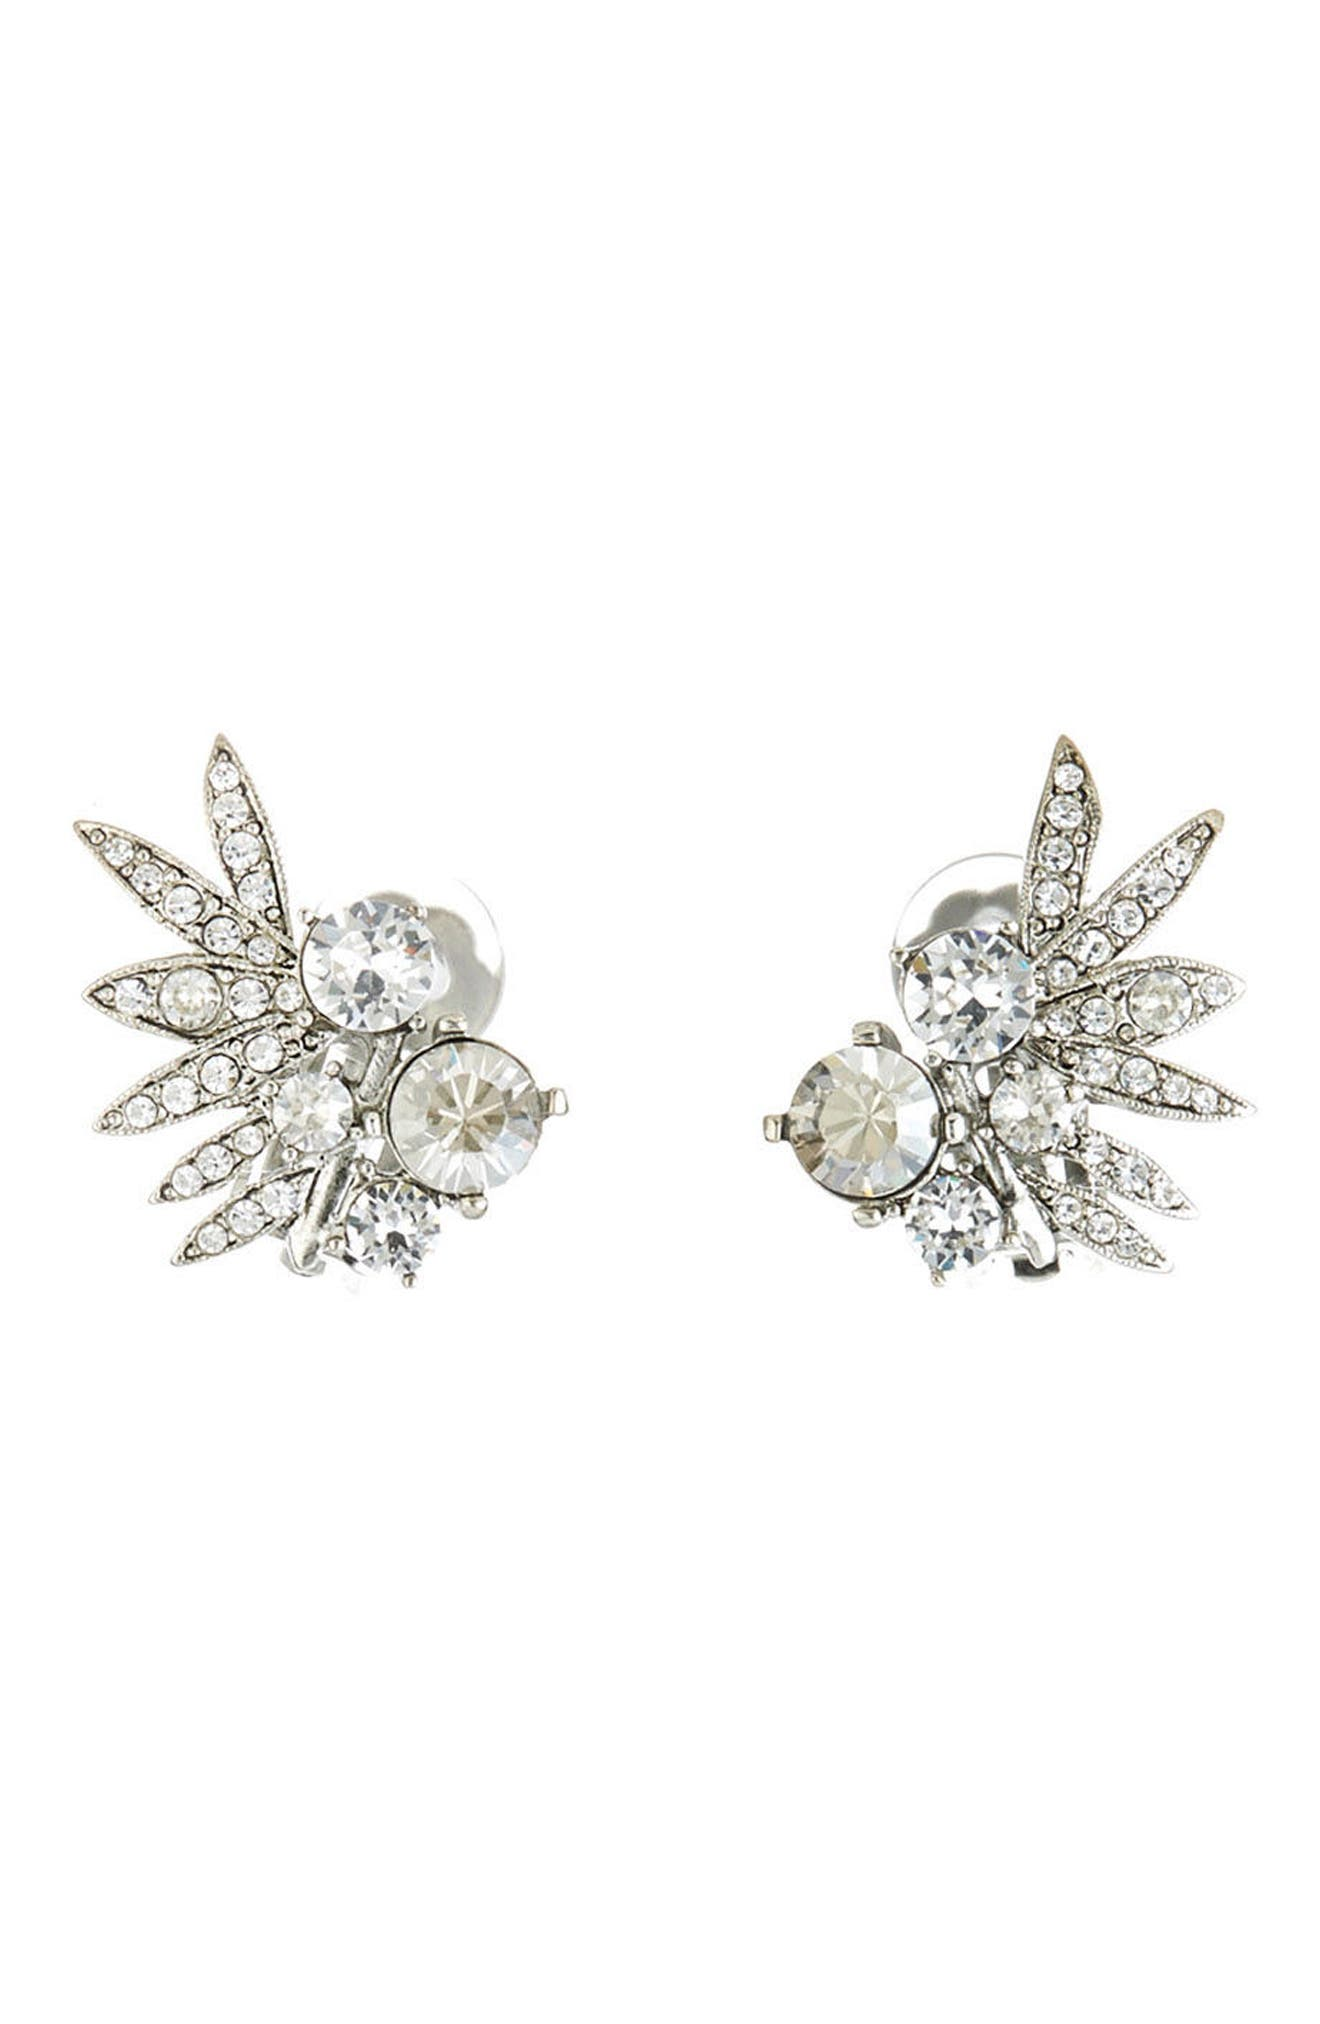 Main Image - Oscar de la Renta Tropical Palm Stud Earrings